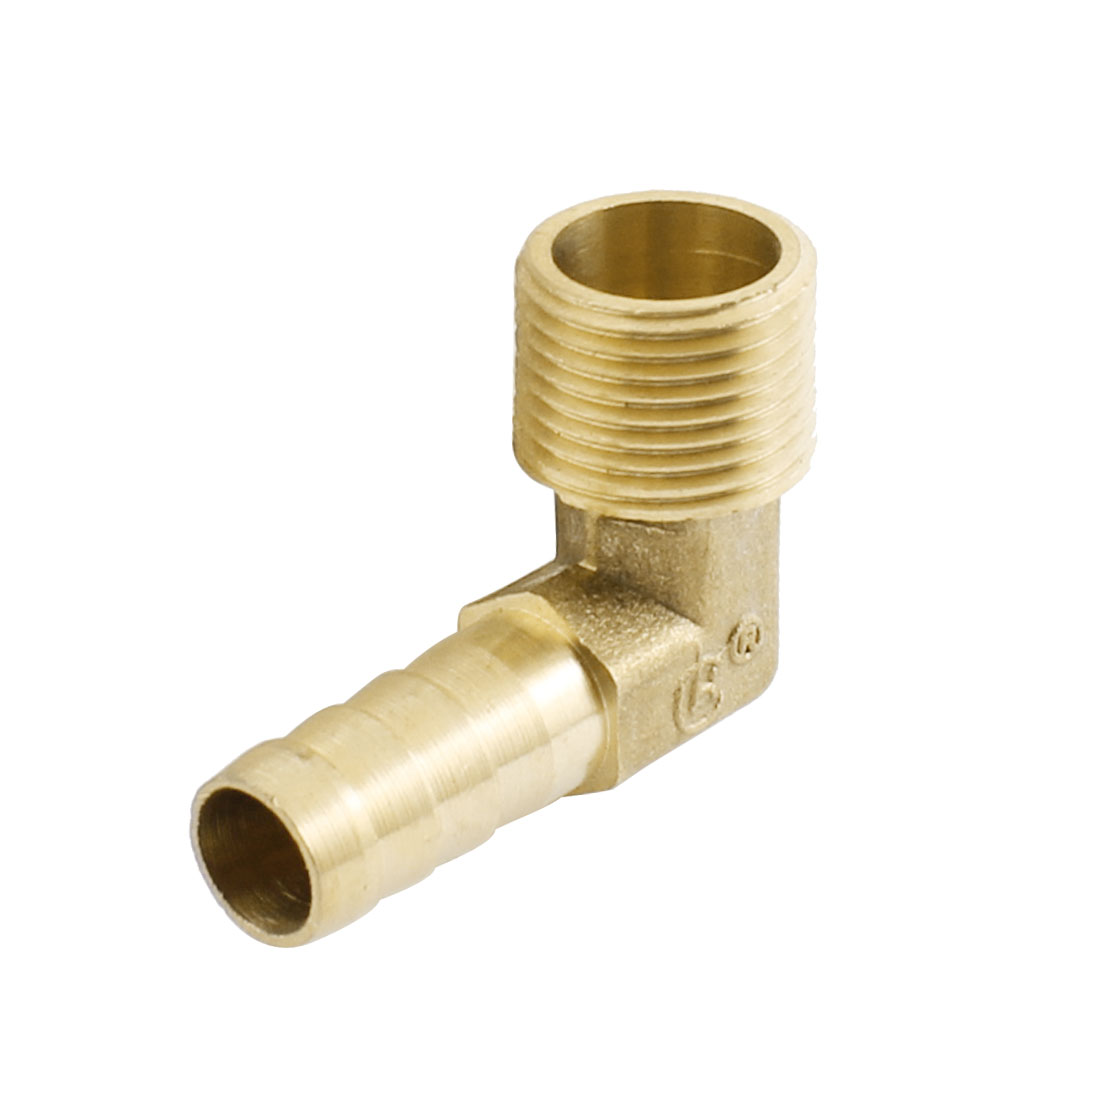 3/8PT x 10mm Right Angle Brass Air Pneumatic Tube Hose Barb Coupler Fitting Pipe Connector